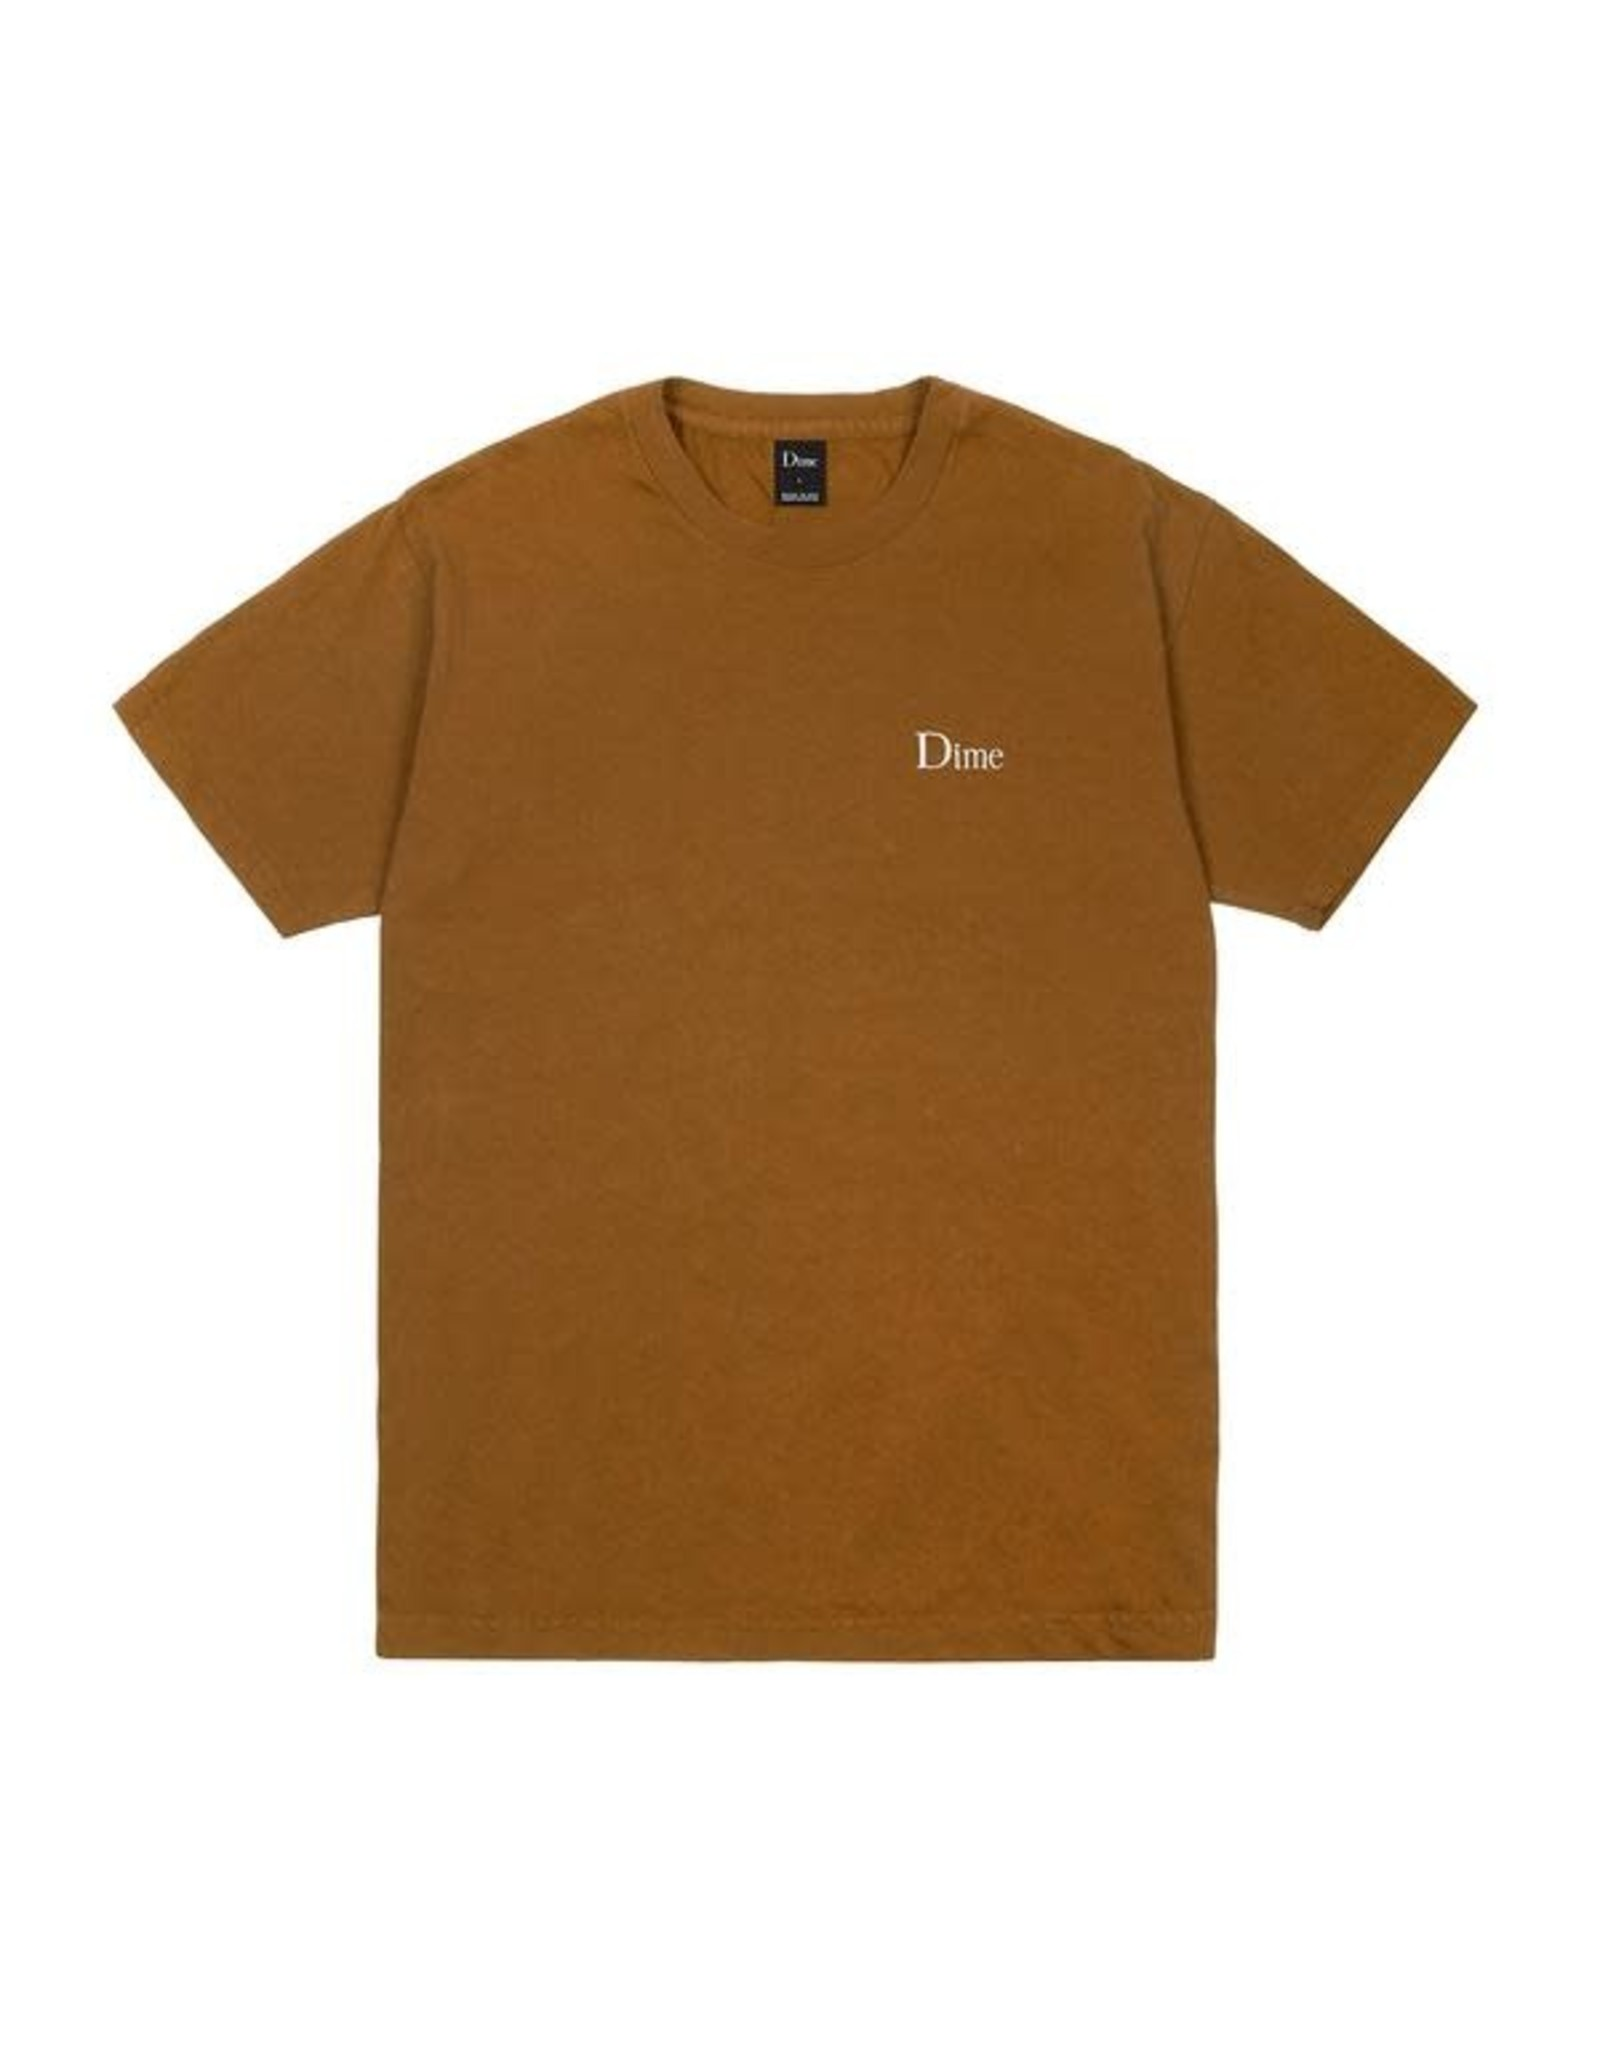 DIME Dime classic logo embroidered t-shirt